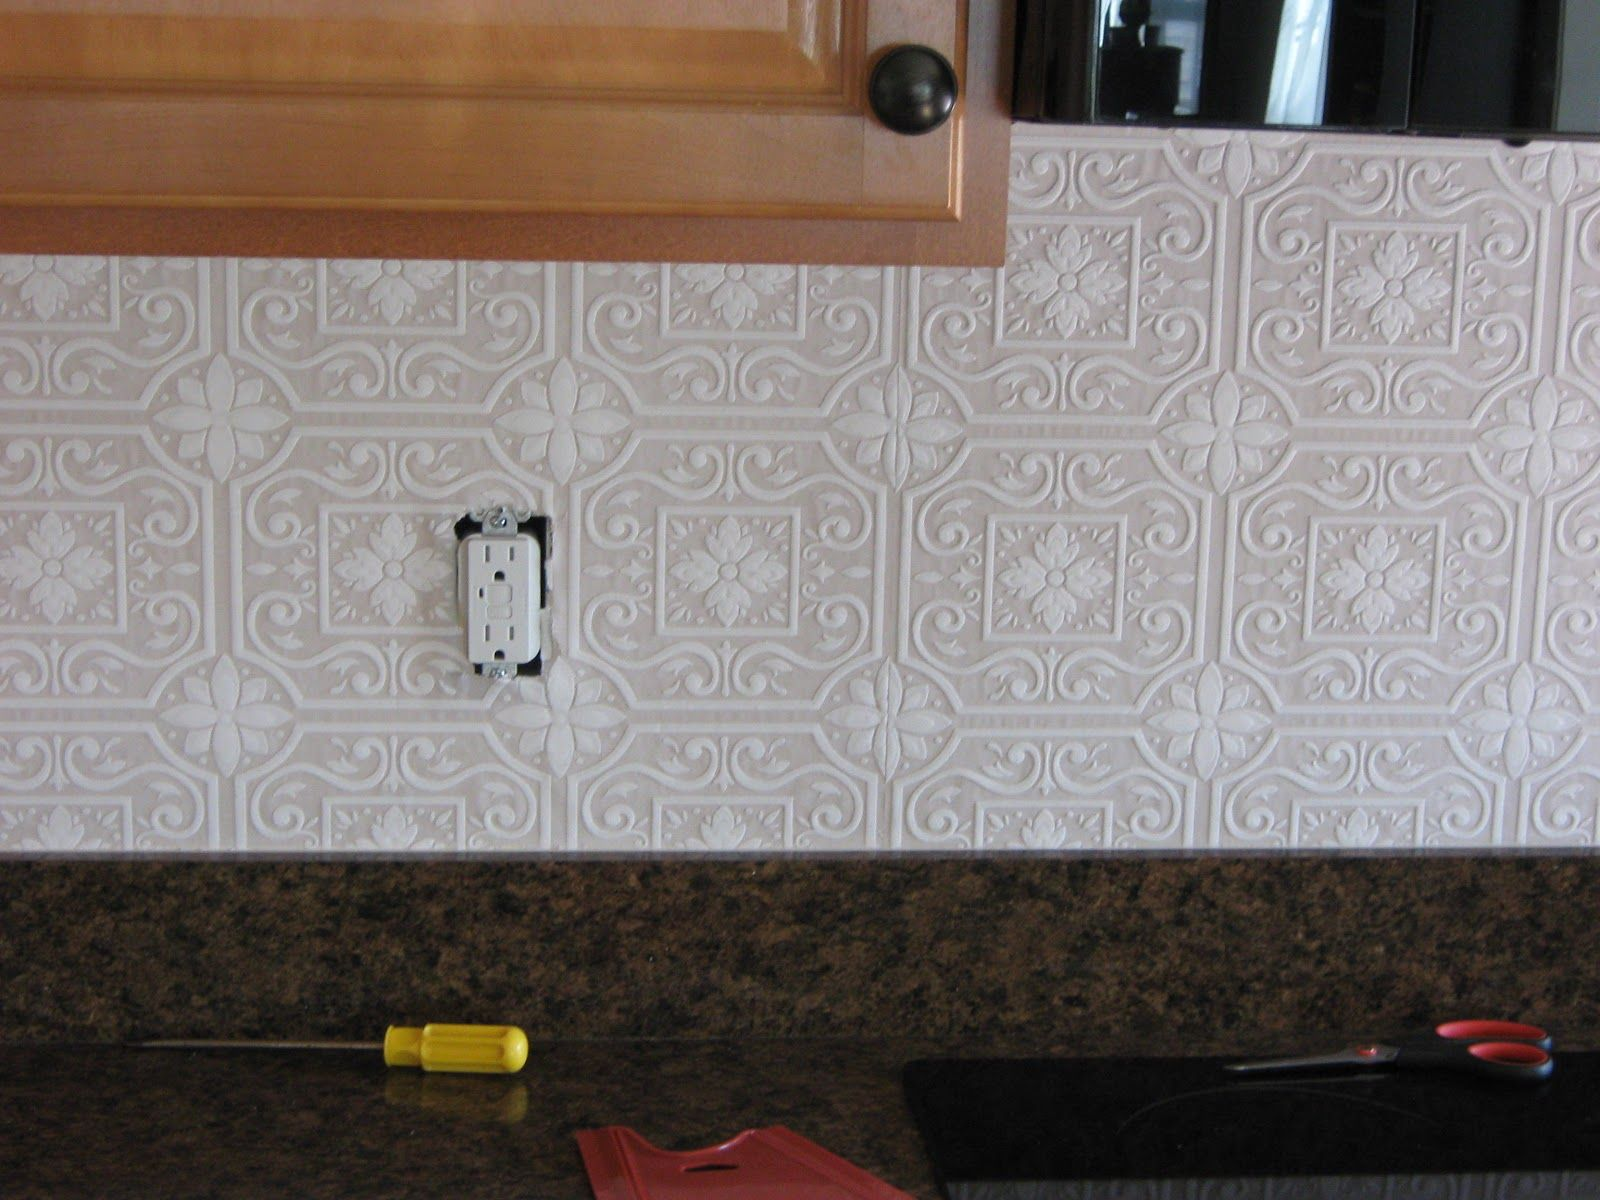 Tin Backsplashes For Kitchens This Is Raised Paintable Wallpaper With A Punched Tin Patte Punched Tin Backsplash Tin Backsplash Kitchen Backsplash Wallpaper